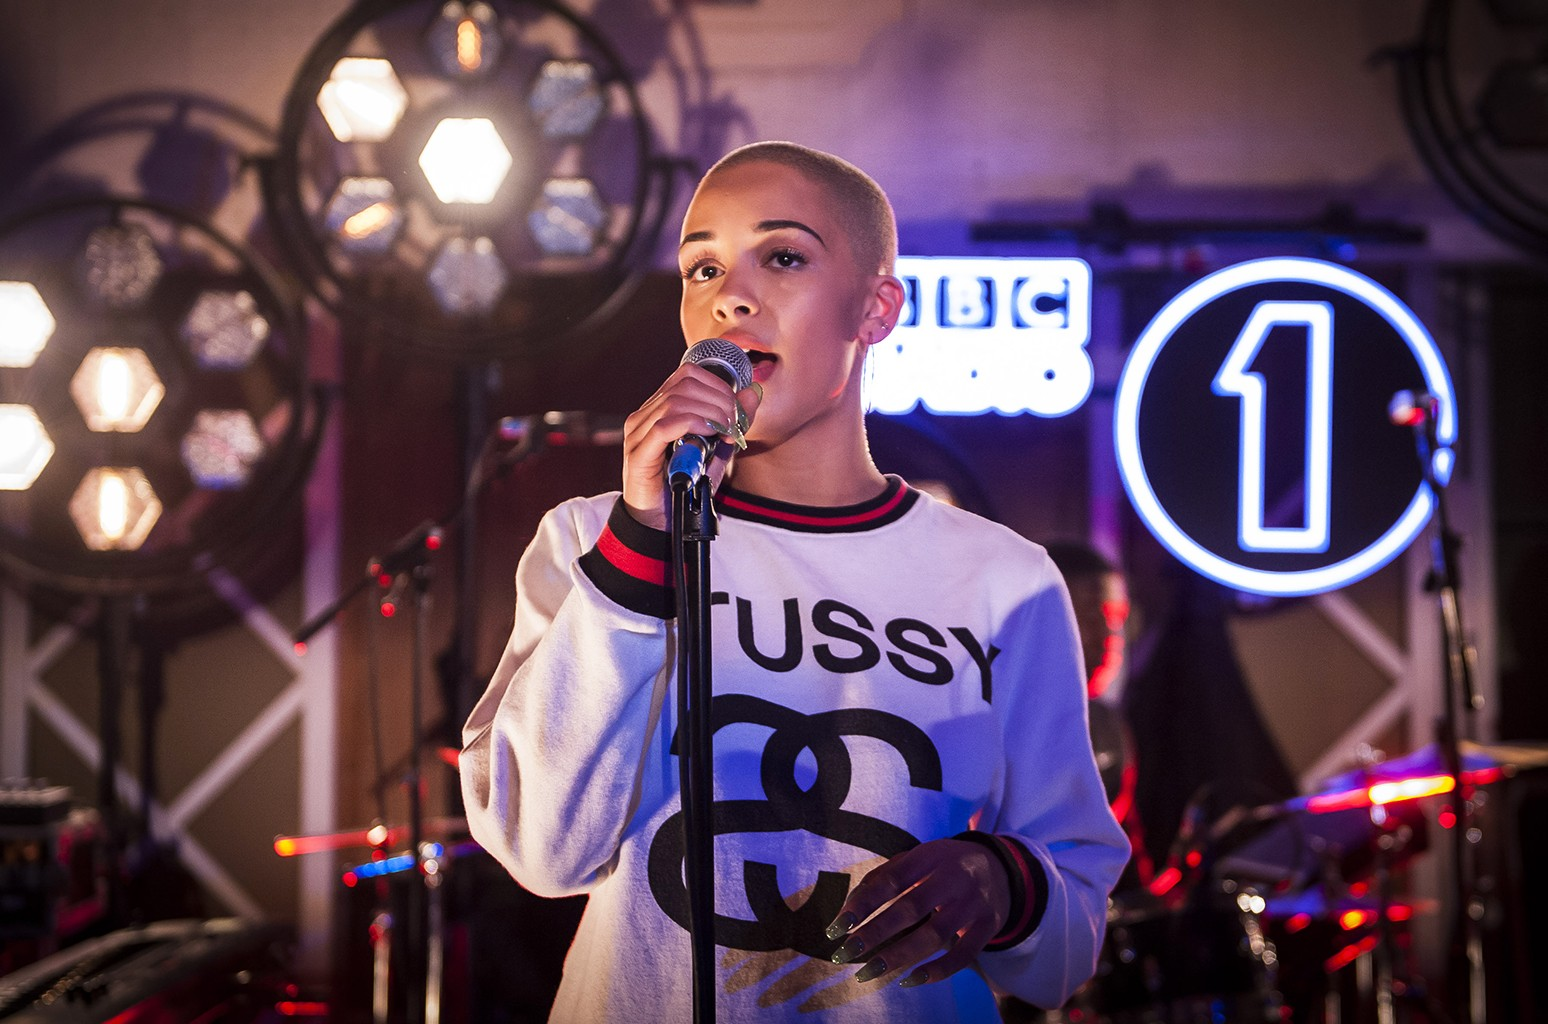 Jorja Smith performs at Radio 1's Future Headliners Live Music Event at Maida Vale Studios in London.